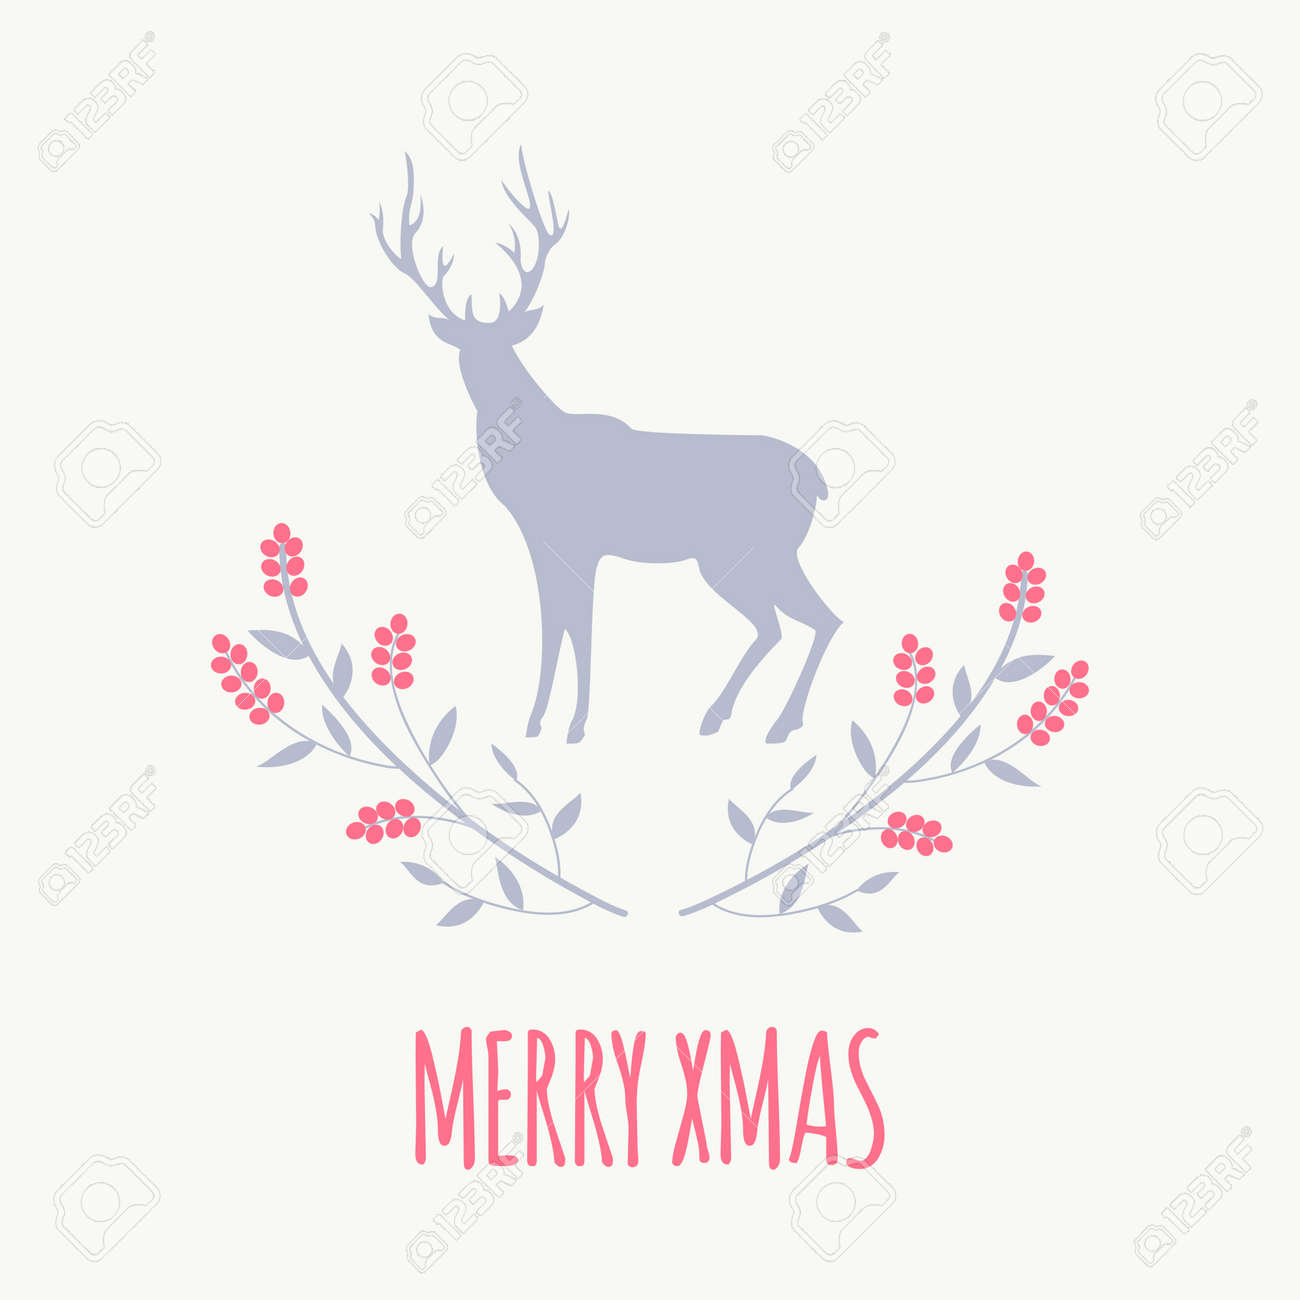 Simple Christmas Greeting Card Design With Red Berries And Deer